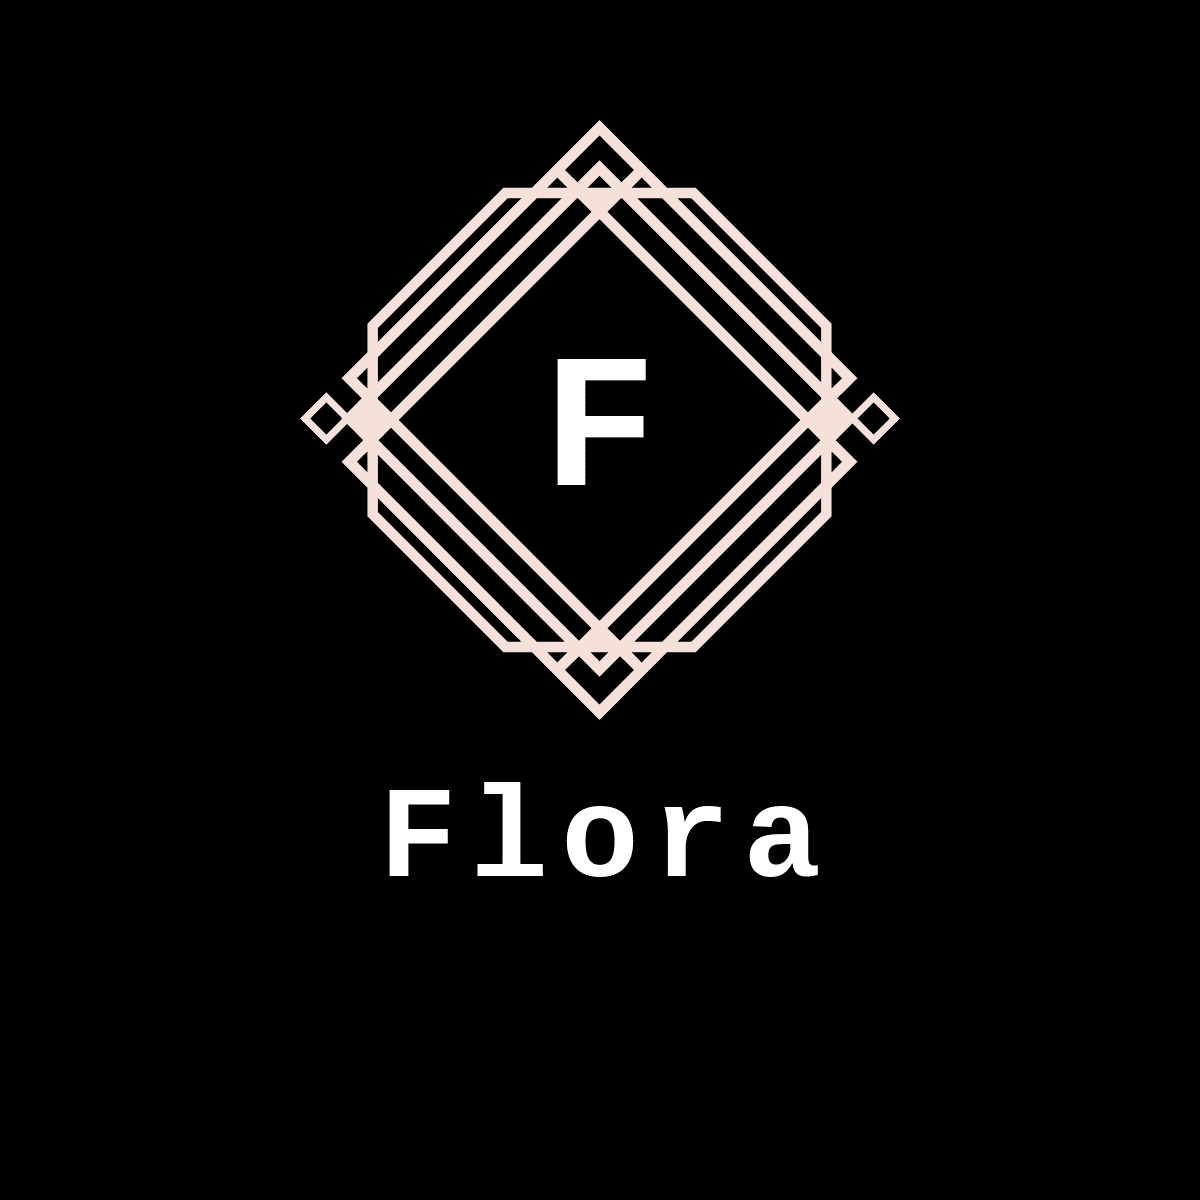 I will Design a Business Logo and Branding